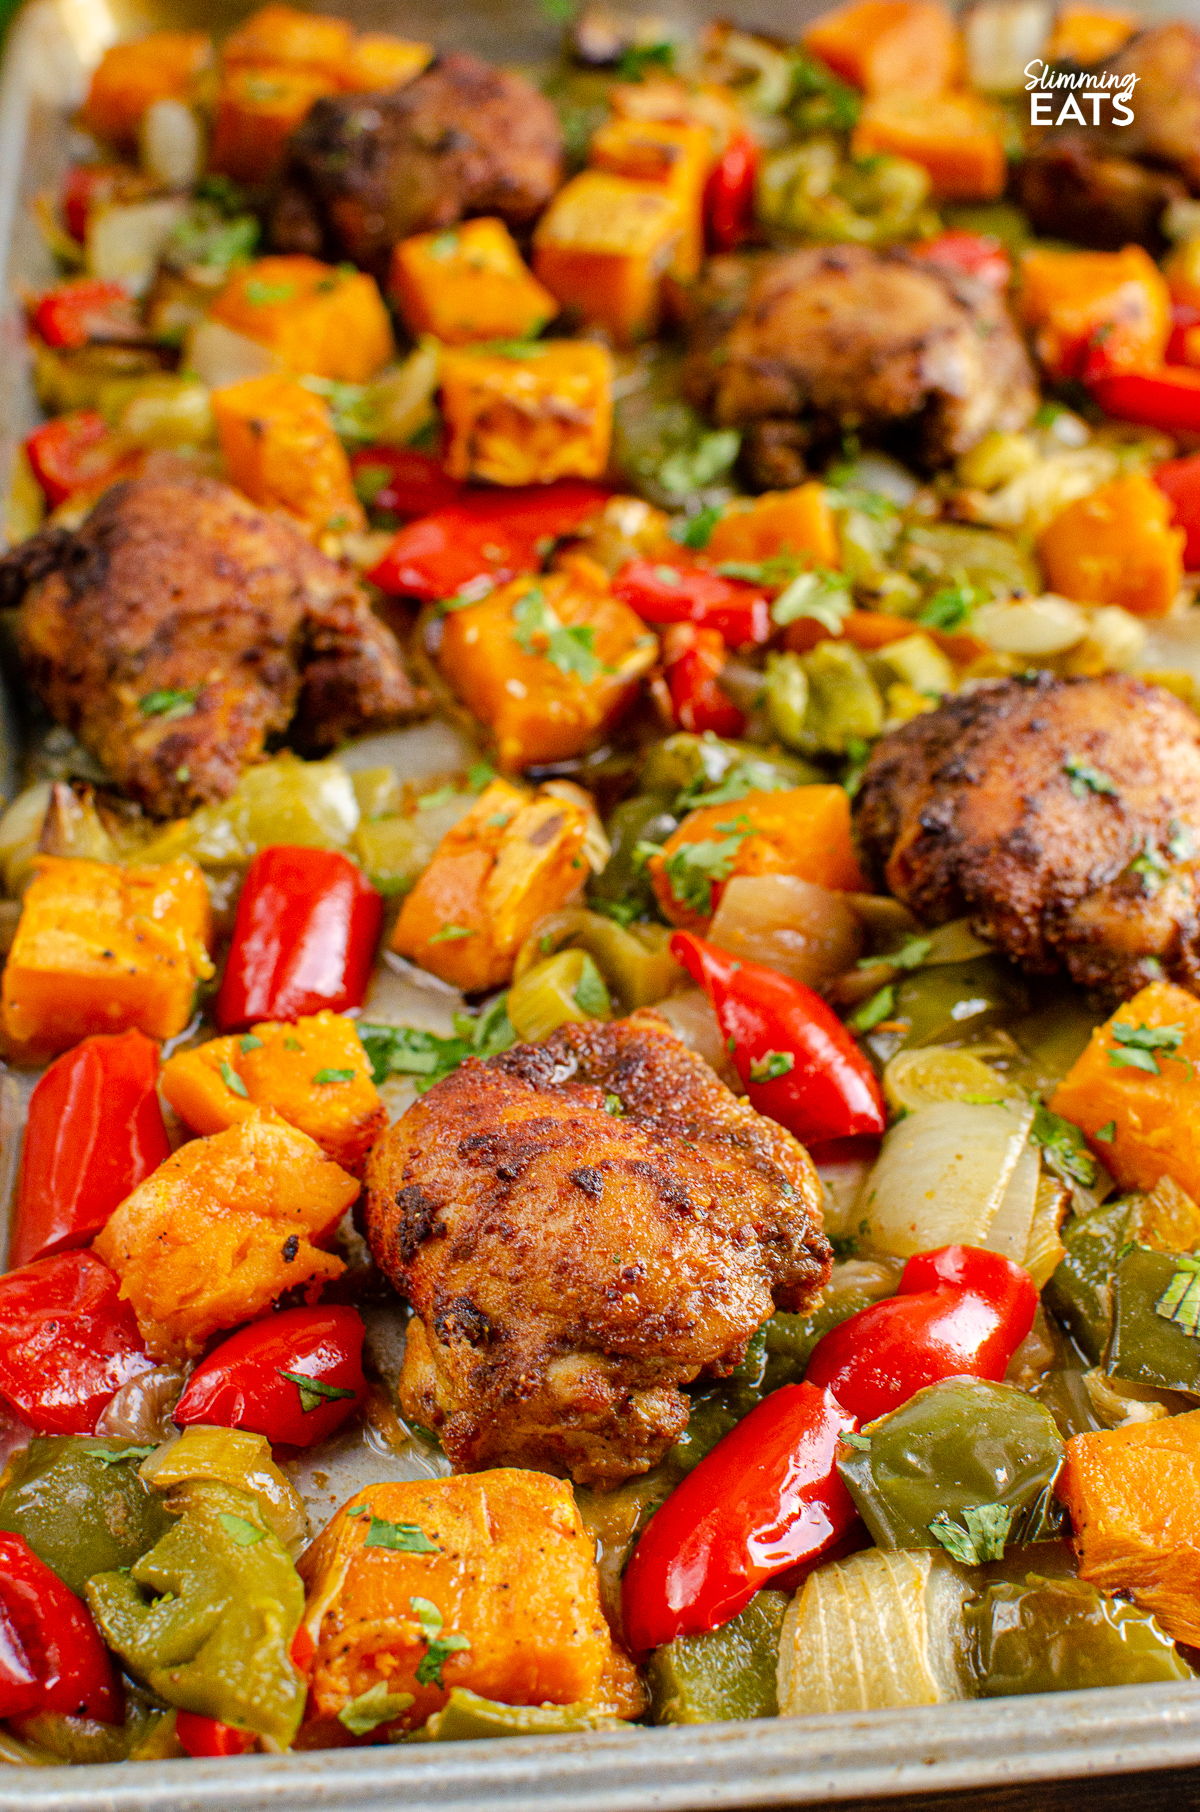 close up of Seasoned Chicken and Roasted Sweet Potato and vegetables baked on a  Tray